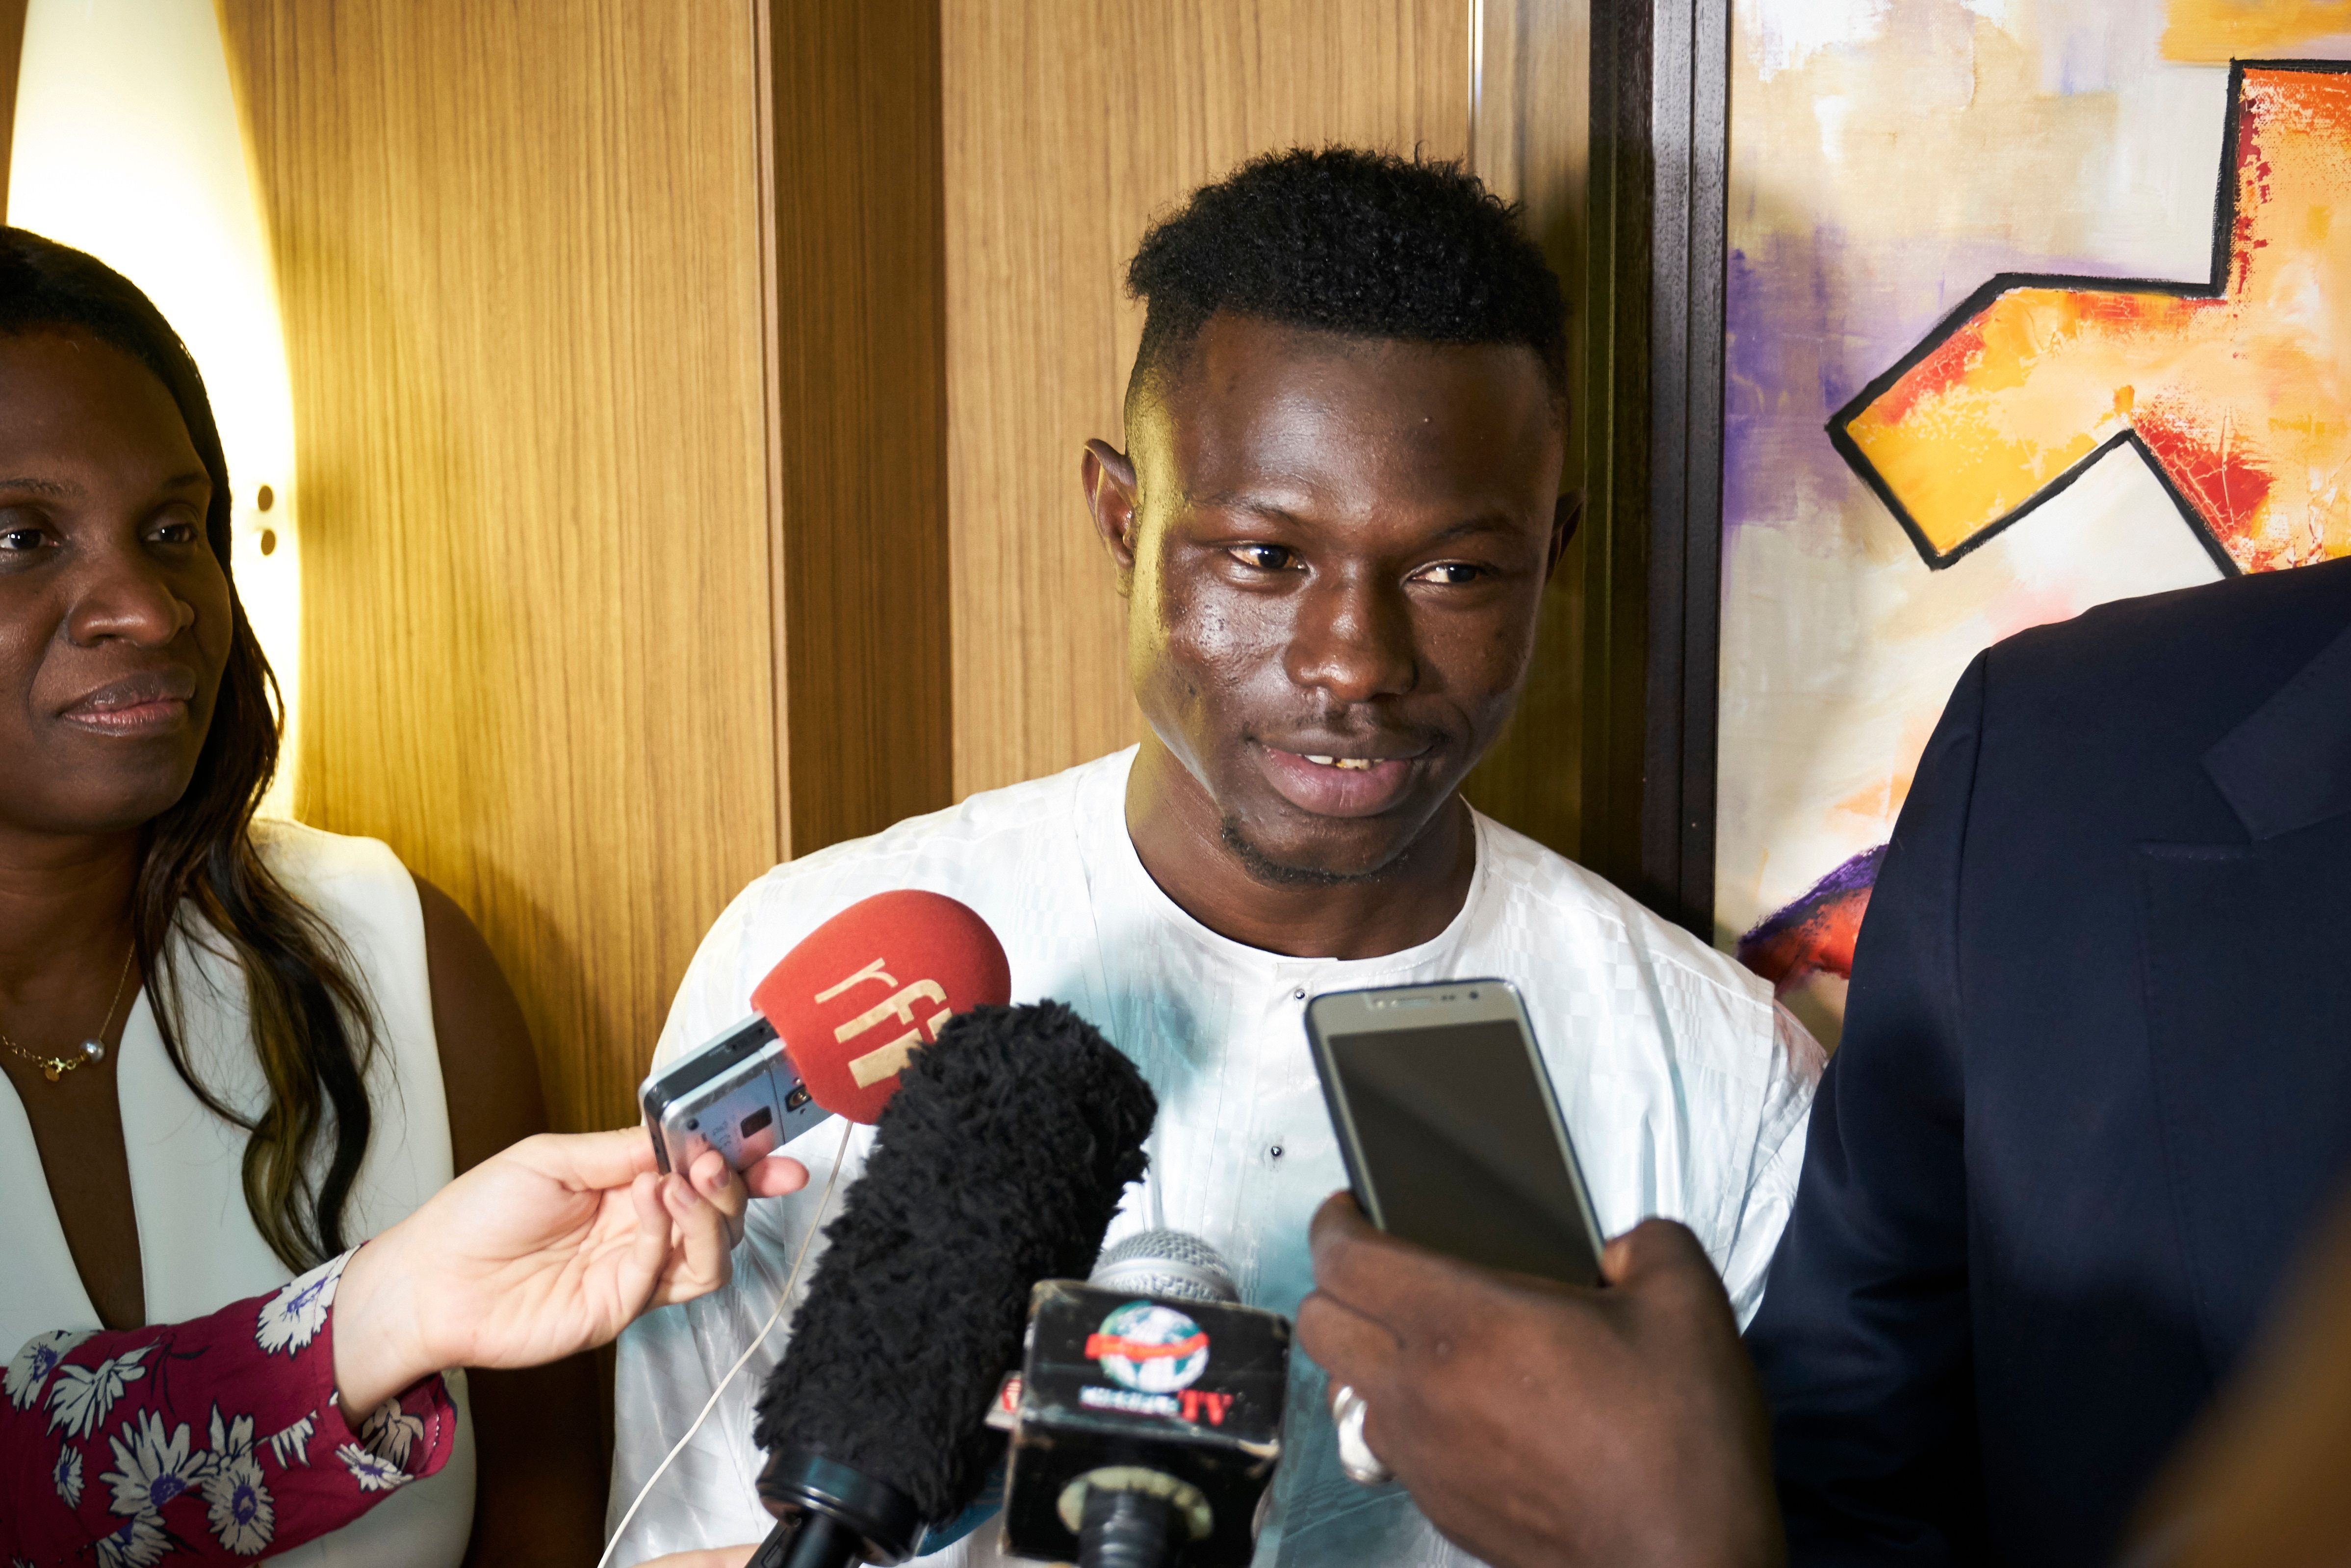 Mamoudou Gassama talks to media during a meeting with Mali's president on June 18.